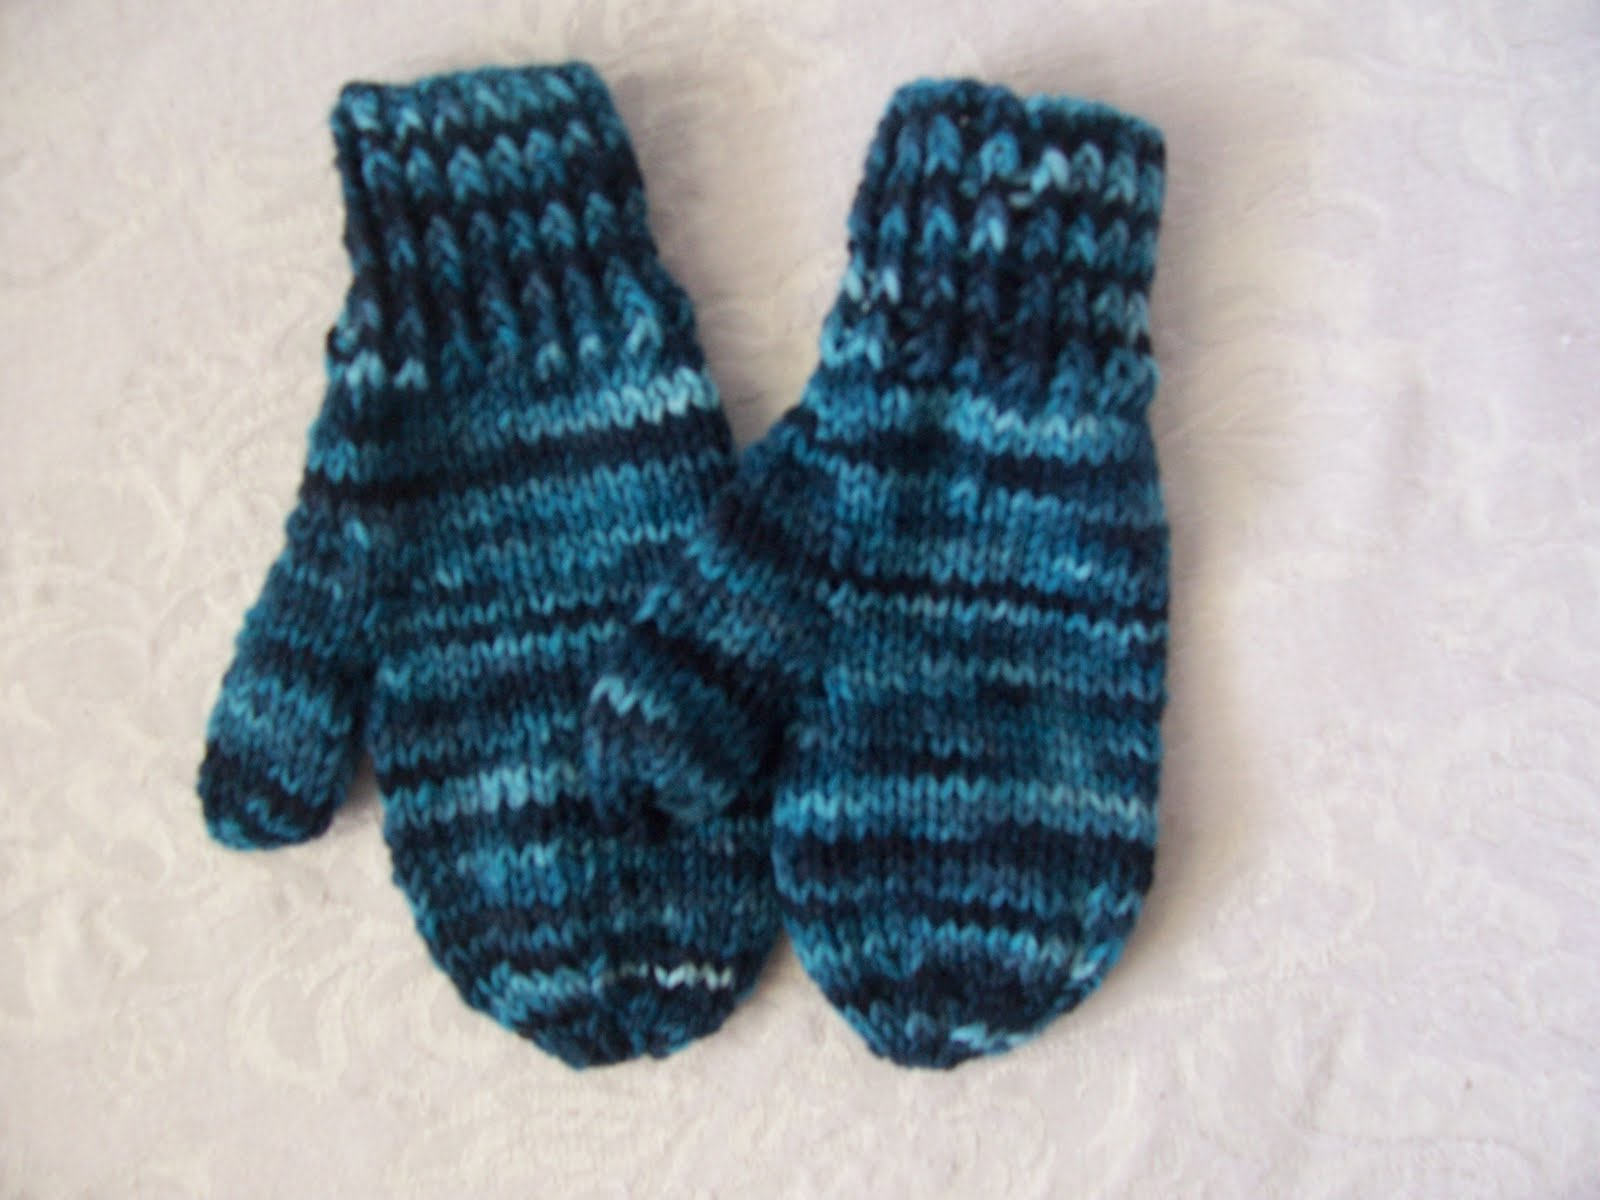 9 Best Images of Mitten Knitting Patterns Free Printable ...